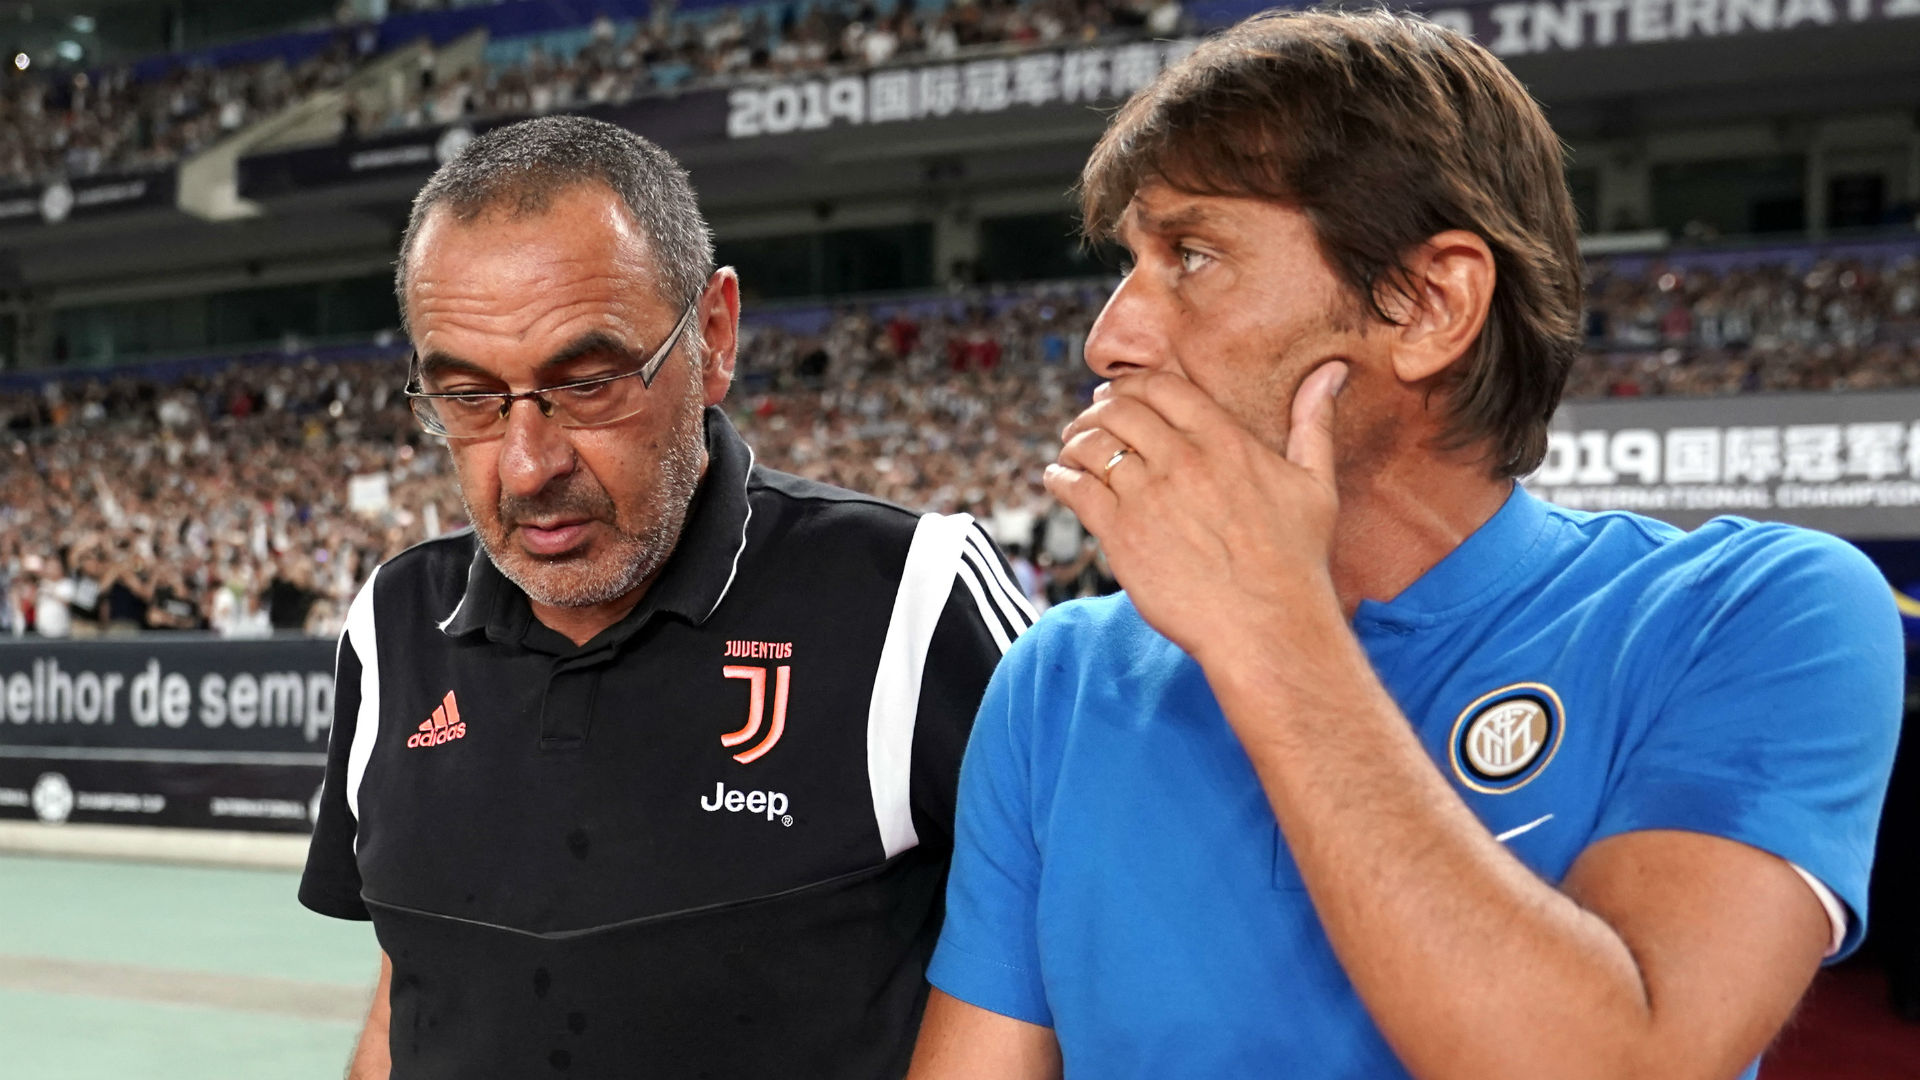 Serie A 2019-20 fixtures: Conte begins with Lecce, Sarri's Juve start at Parma